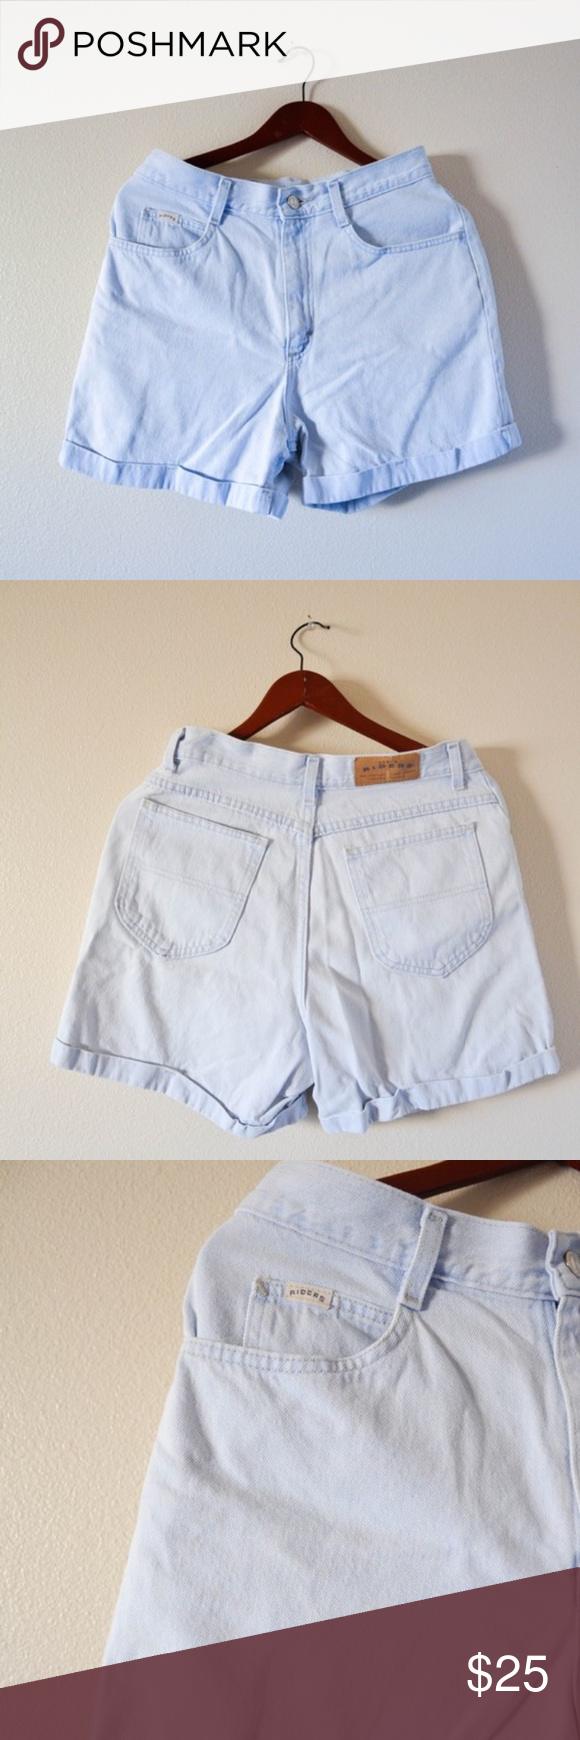 Vintage 80's 90's RIDERS denim cuff shorts riders // vintage 80's-90's // size 10 M  //condition// tags are a bit worn down, maybe a loose thread somewhere, but in really good aesthetic condition  //measurements// waist: 14 inches hips: 19 inches length: 16 inches inseam: 4 inches Vintage Shorts Jean Shorts